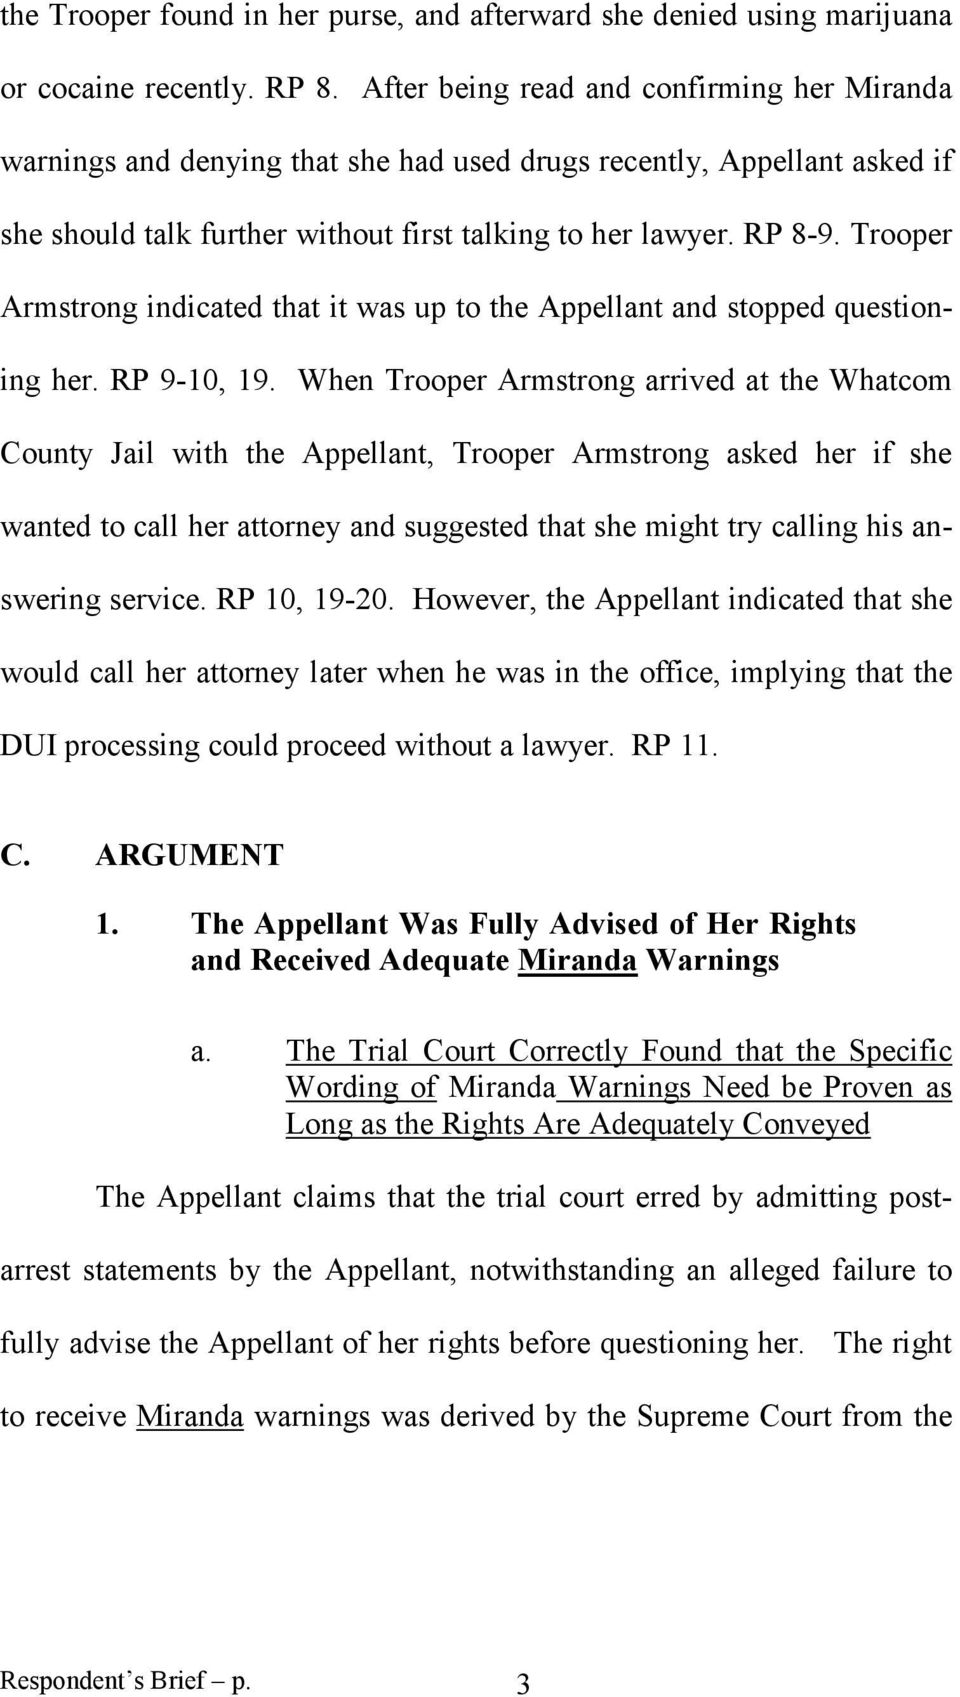 Trooper Armstrong indicated that it was up to the Appellant and stopped questioning her. RP 9-10, 19.